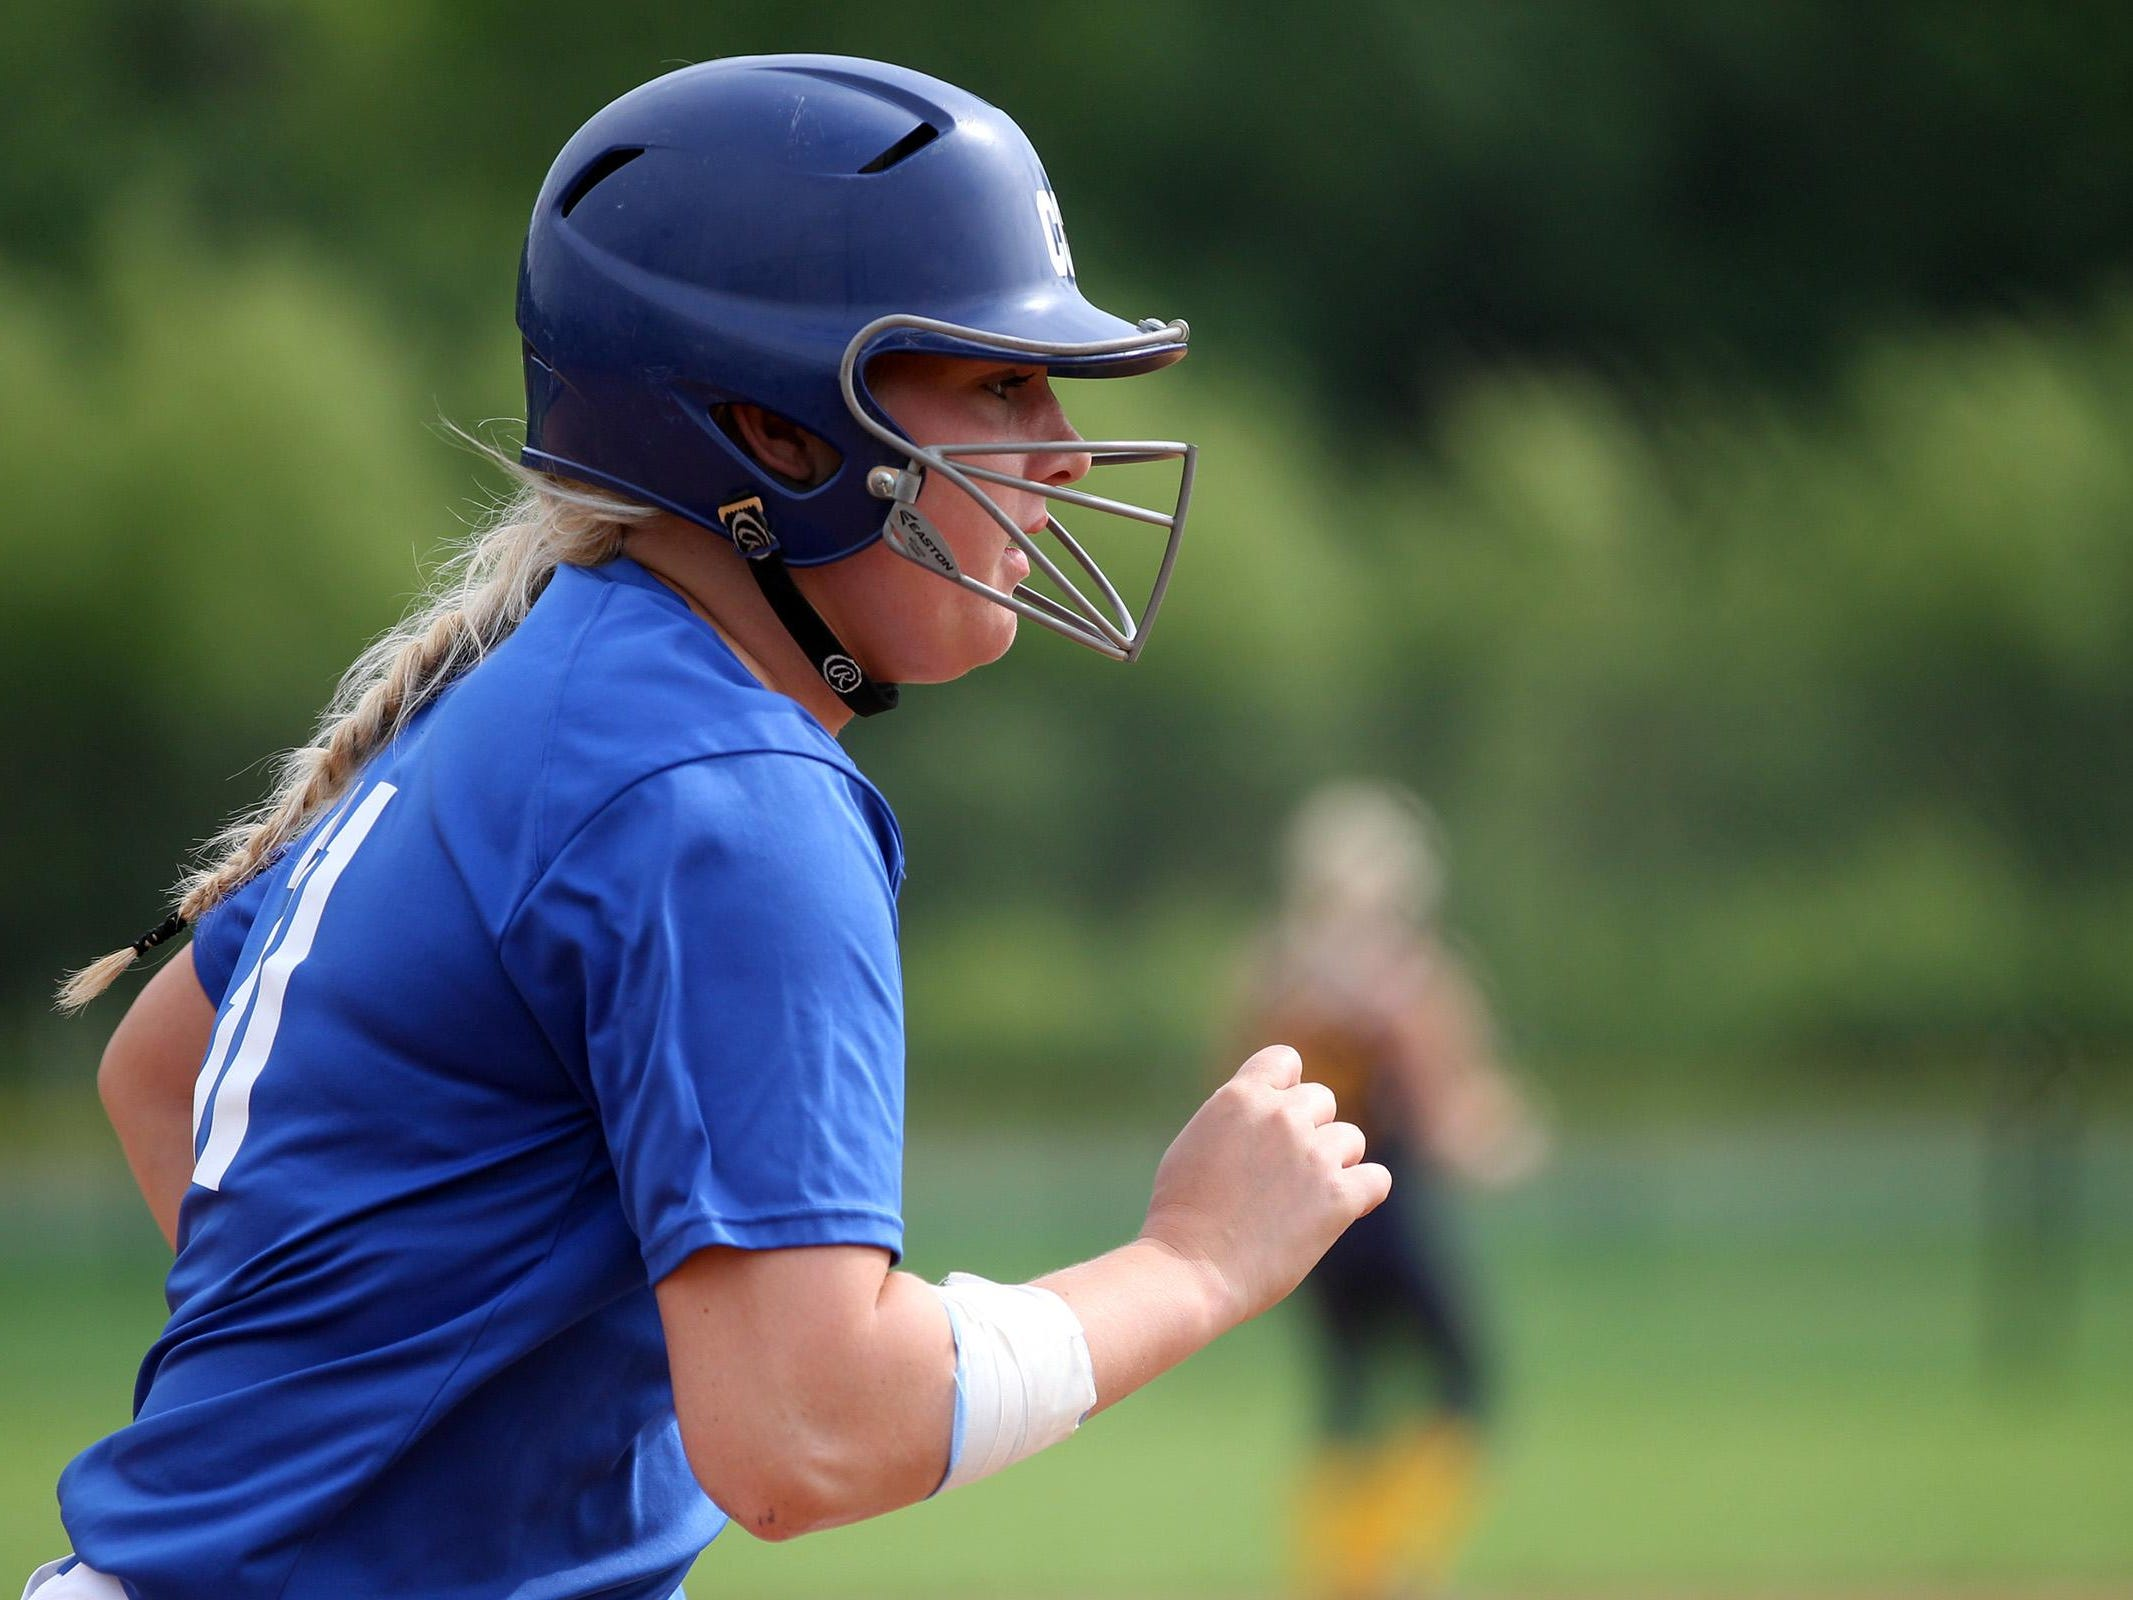 Clear Creek Amana's Lexi Kinnaird runs to first base during the Clippers' game against Regina at the University of Iowa softball complex on Friday, June 26, 2015. David Scrivner / Iowa City Press-Citizen